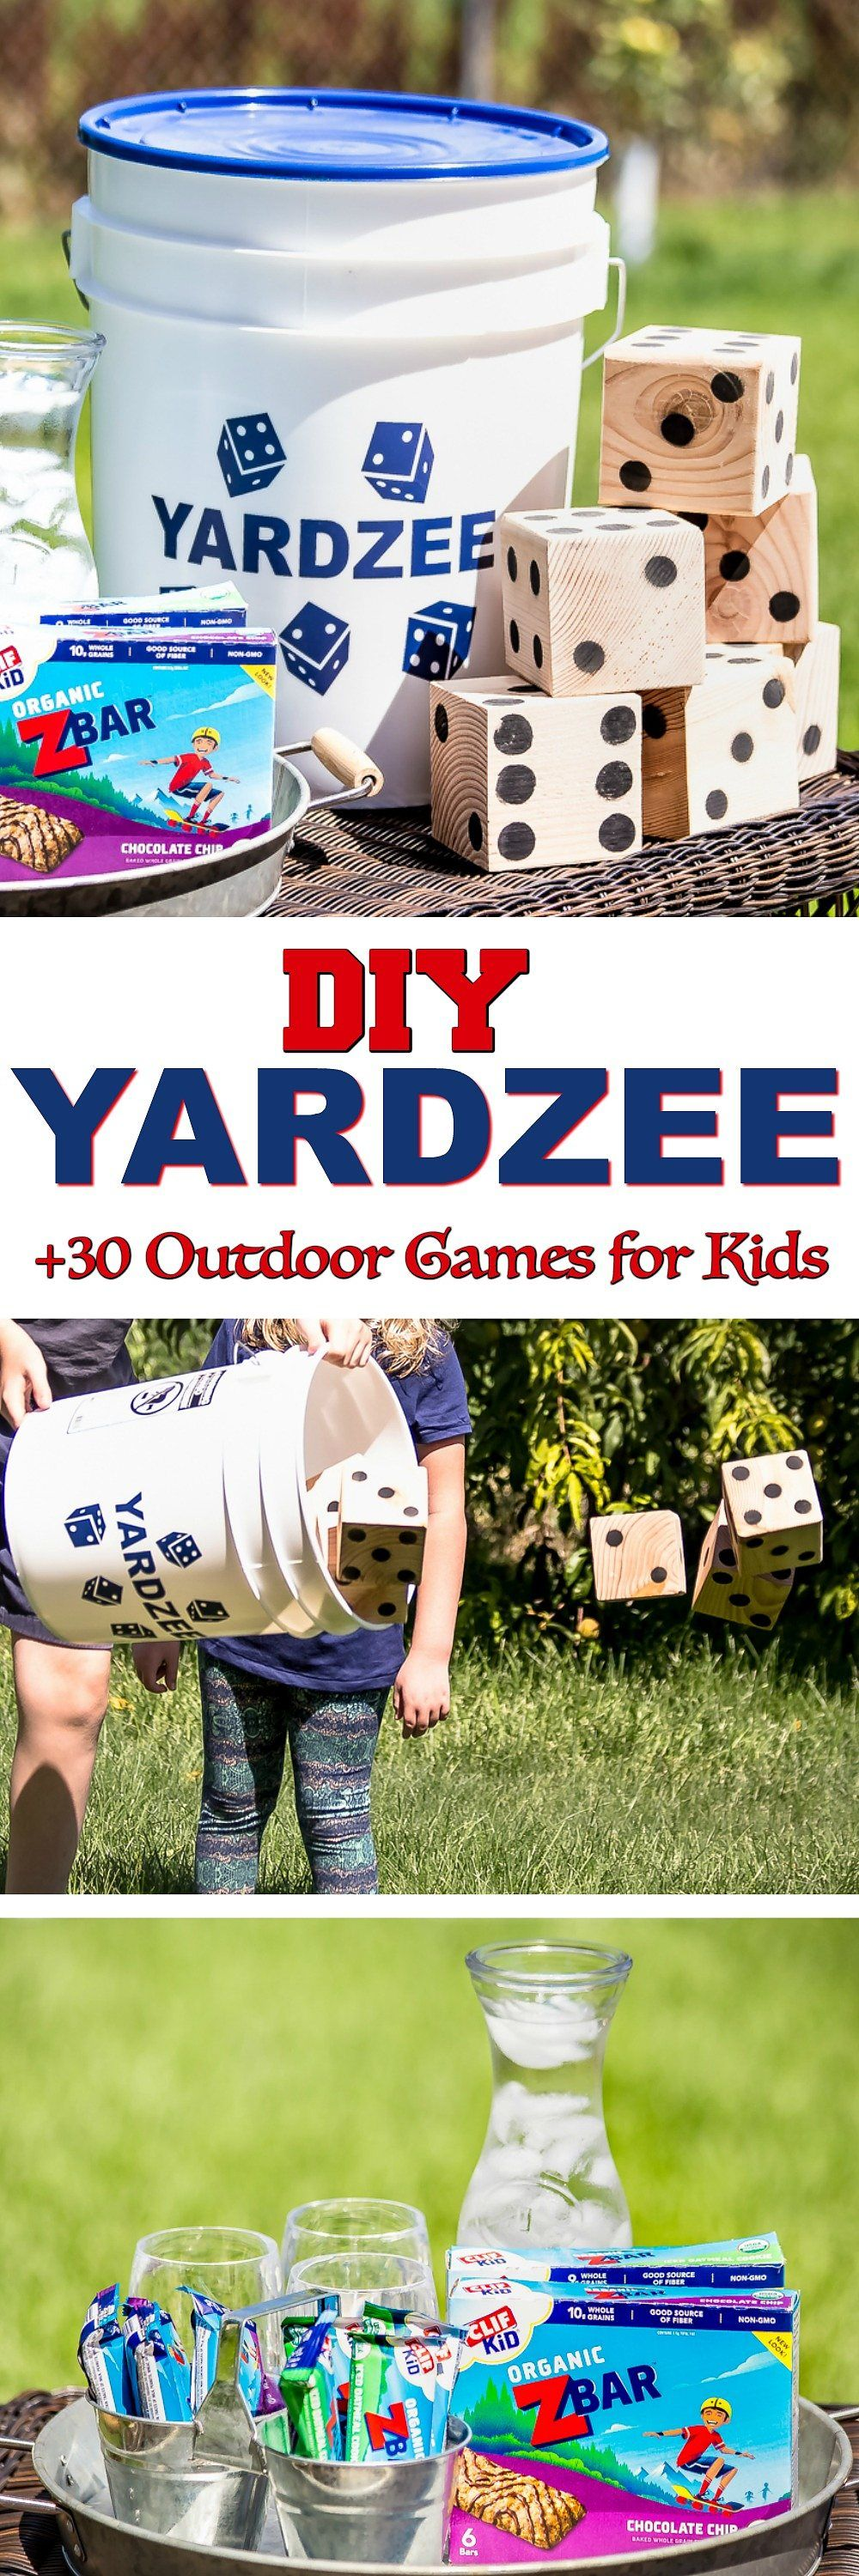 Classic Outdoor Games for Kids DIY Yardzee tutorial